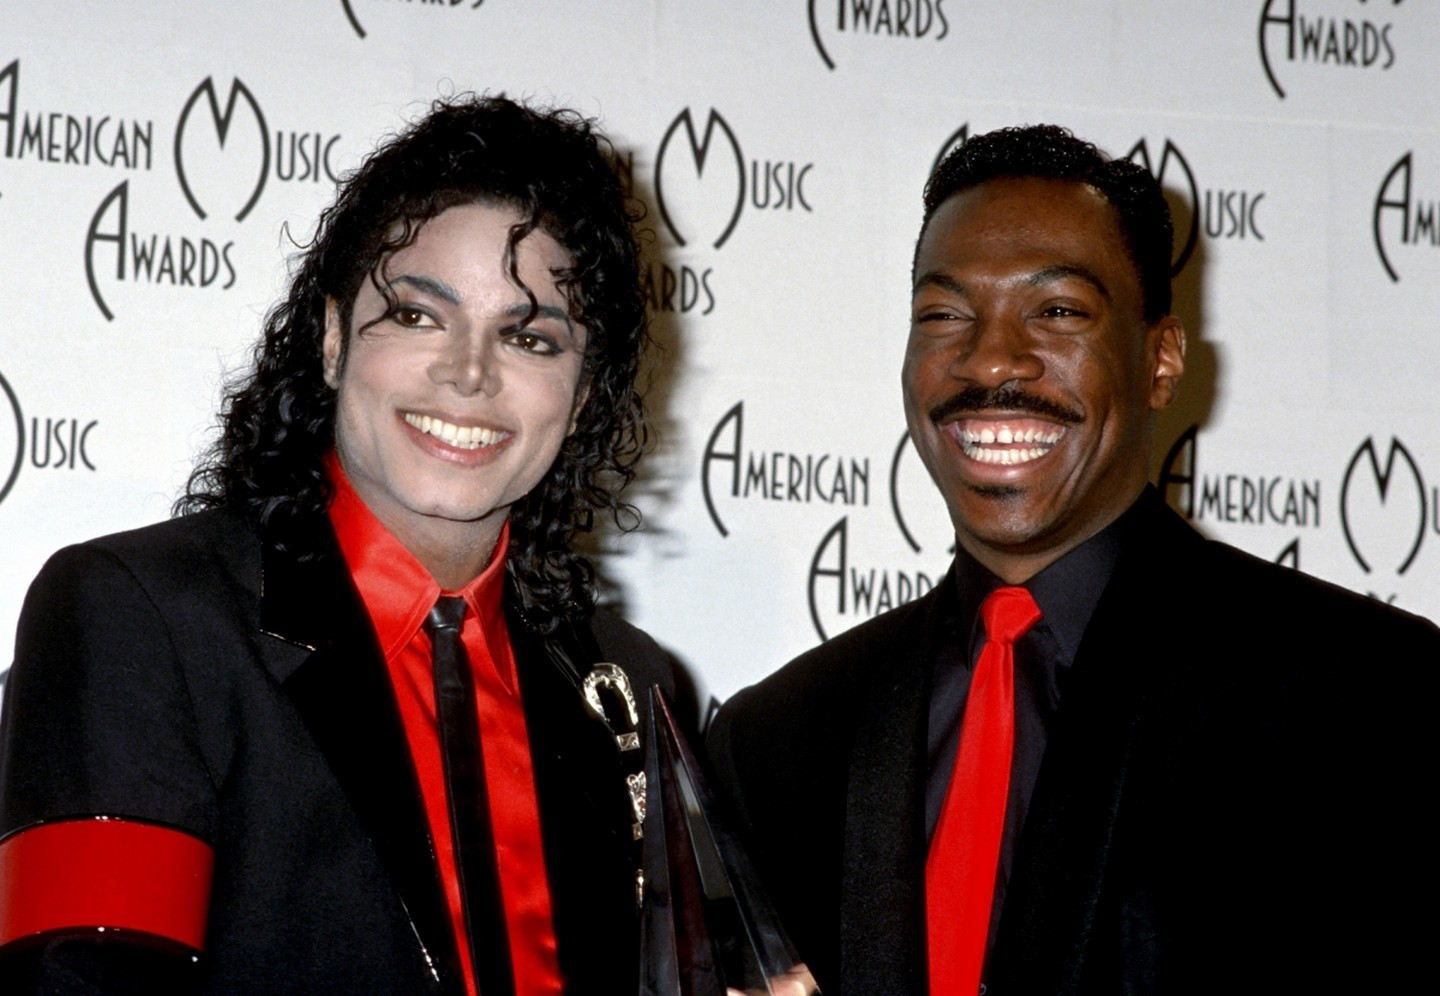 The 16th American Music Awards Jan 30 1989  1989-American-Music-AWARDS-michael-jackson-8253499-1440-996